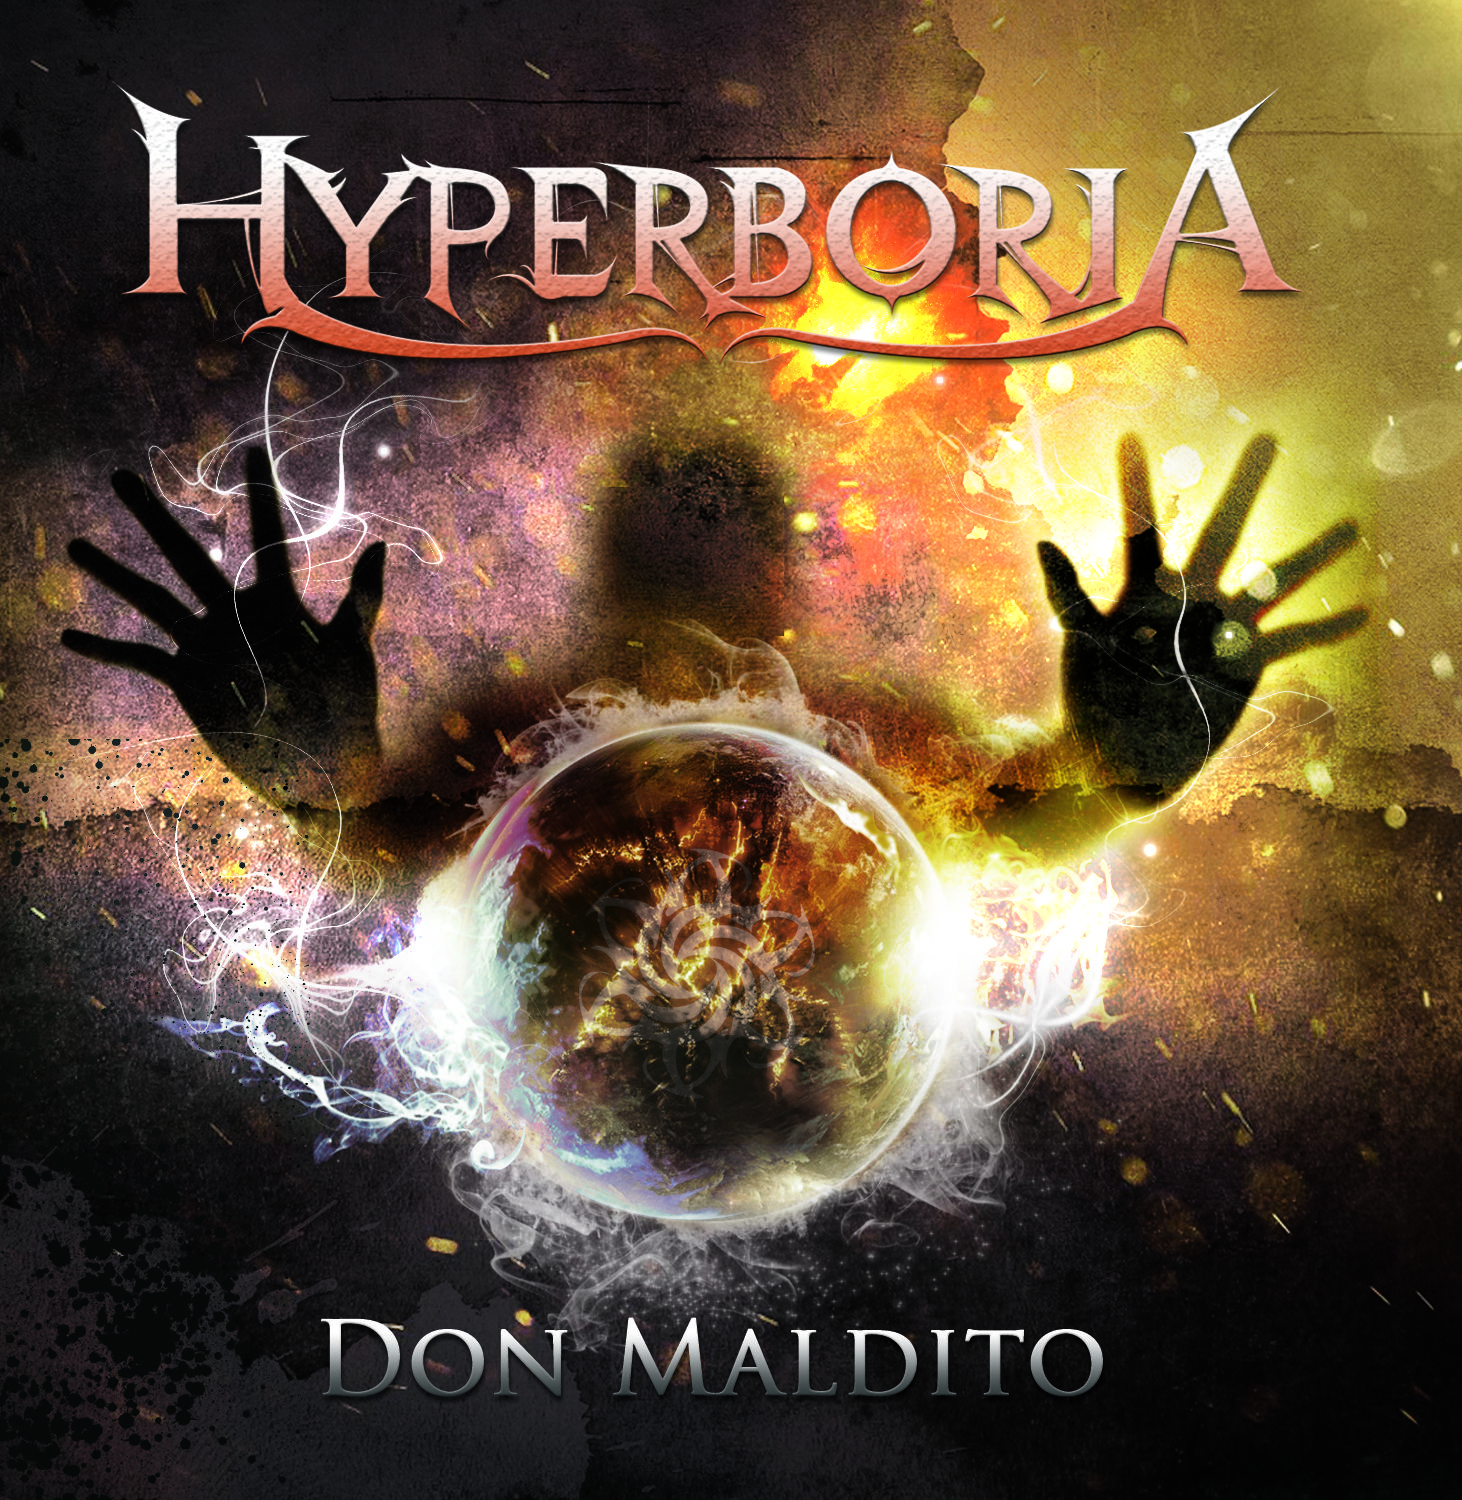 Hyperboria - Don Maldito (Portada CD) By Creation's Work 2014.